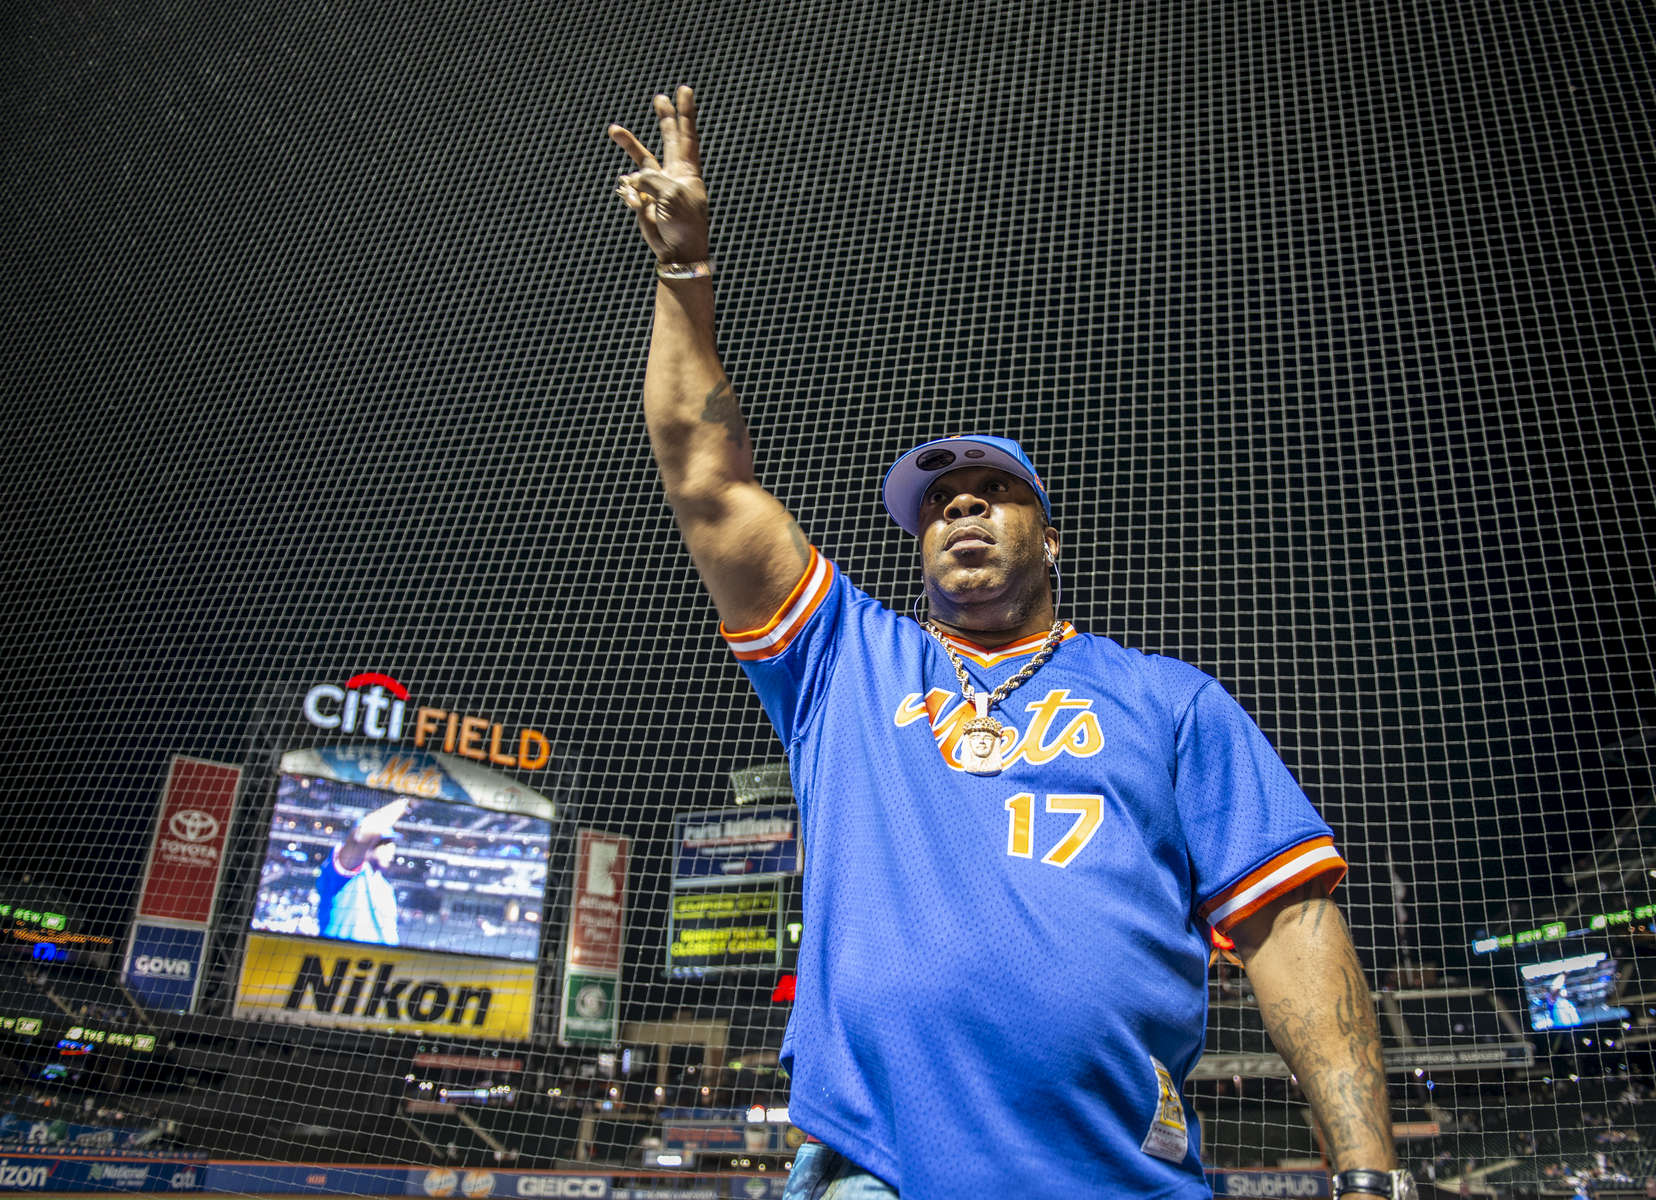 Rapper Busta Rhymes performs at the New York Mets vs. LA Dodgers post game at Citi Field located at 123-01 Roosevelt Avenue in Queens, New York on Friday June 22, 2018.